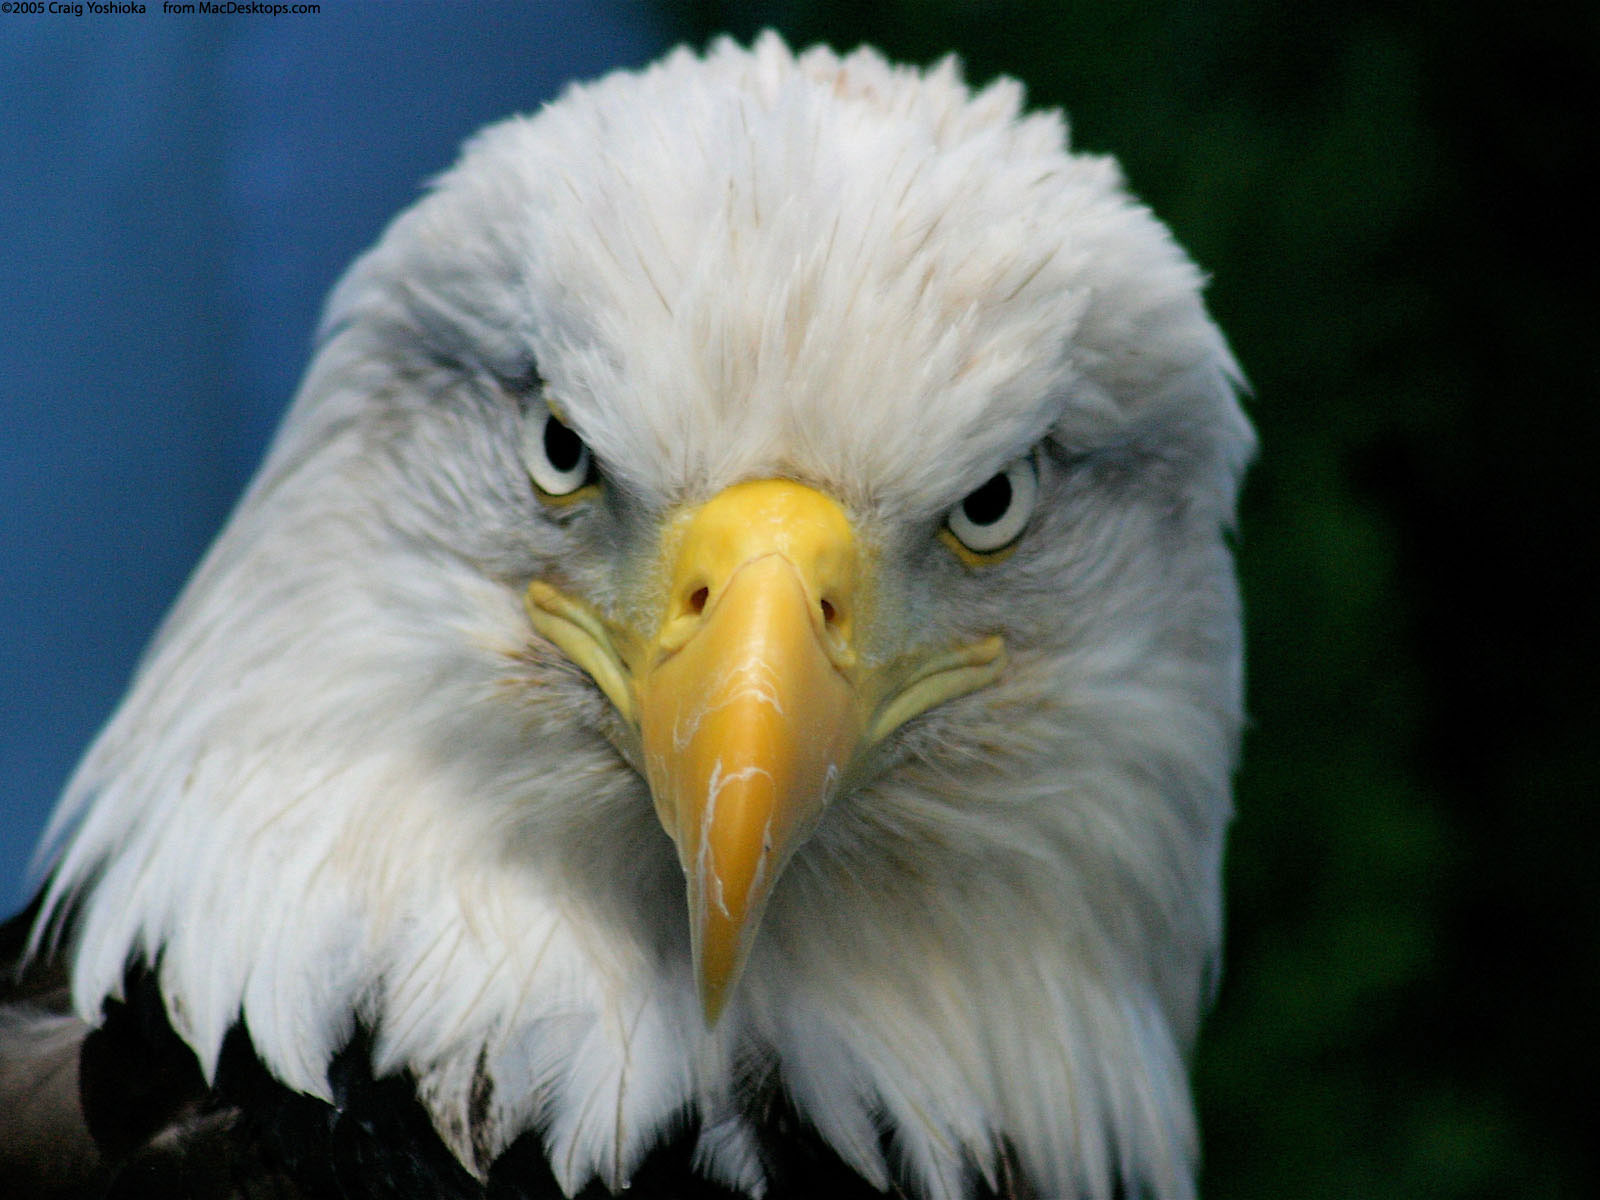 By Stacey Gehrke V.54: Incredible Eagle Image